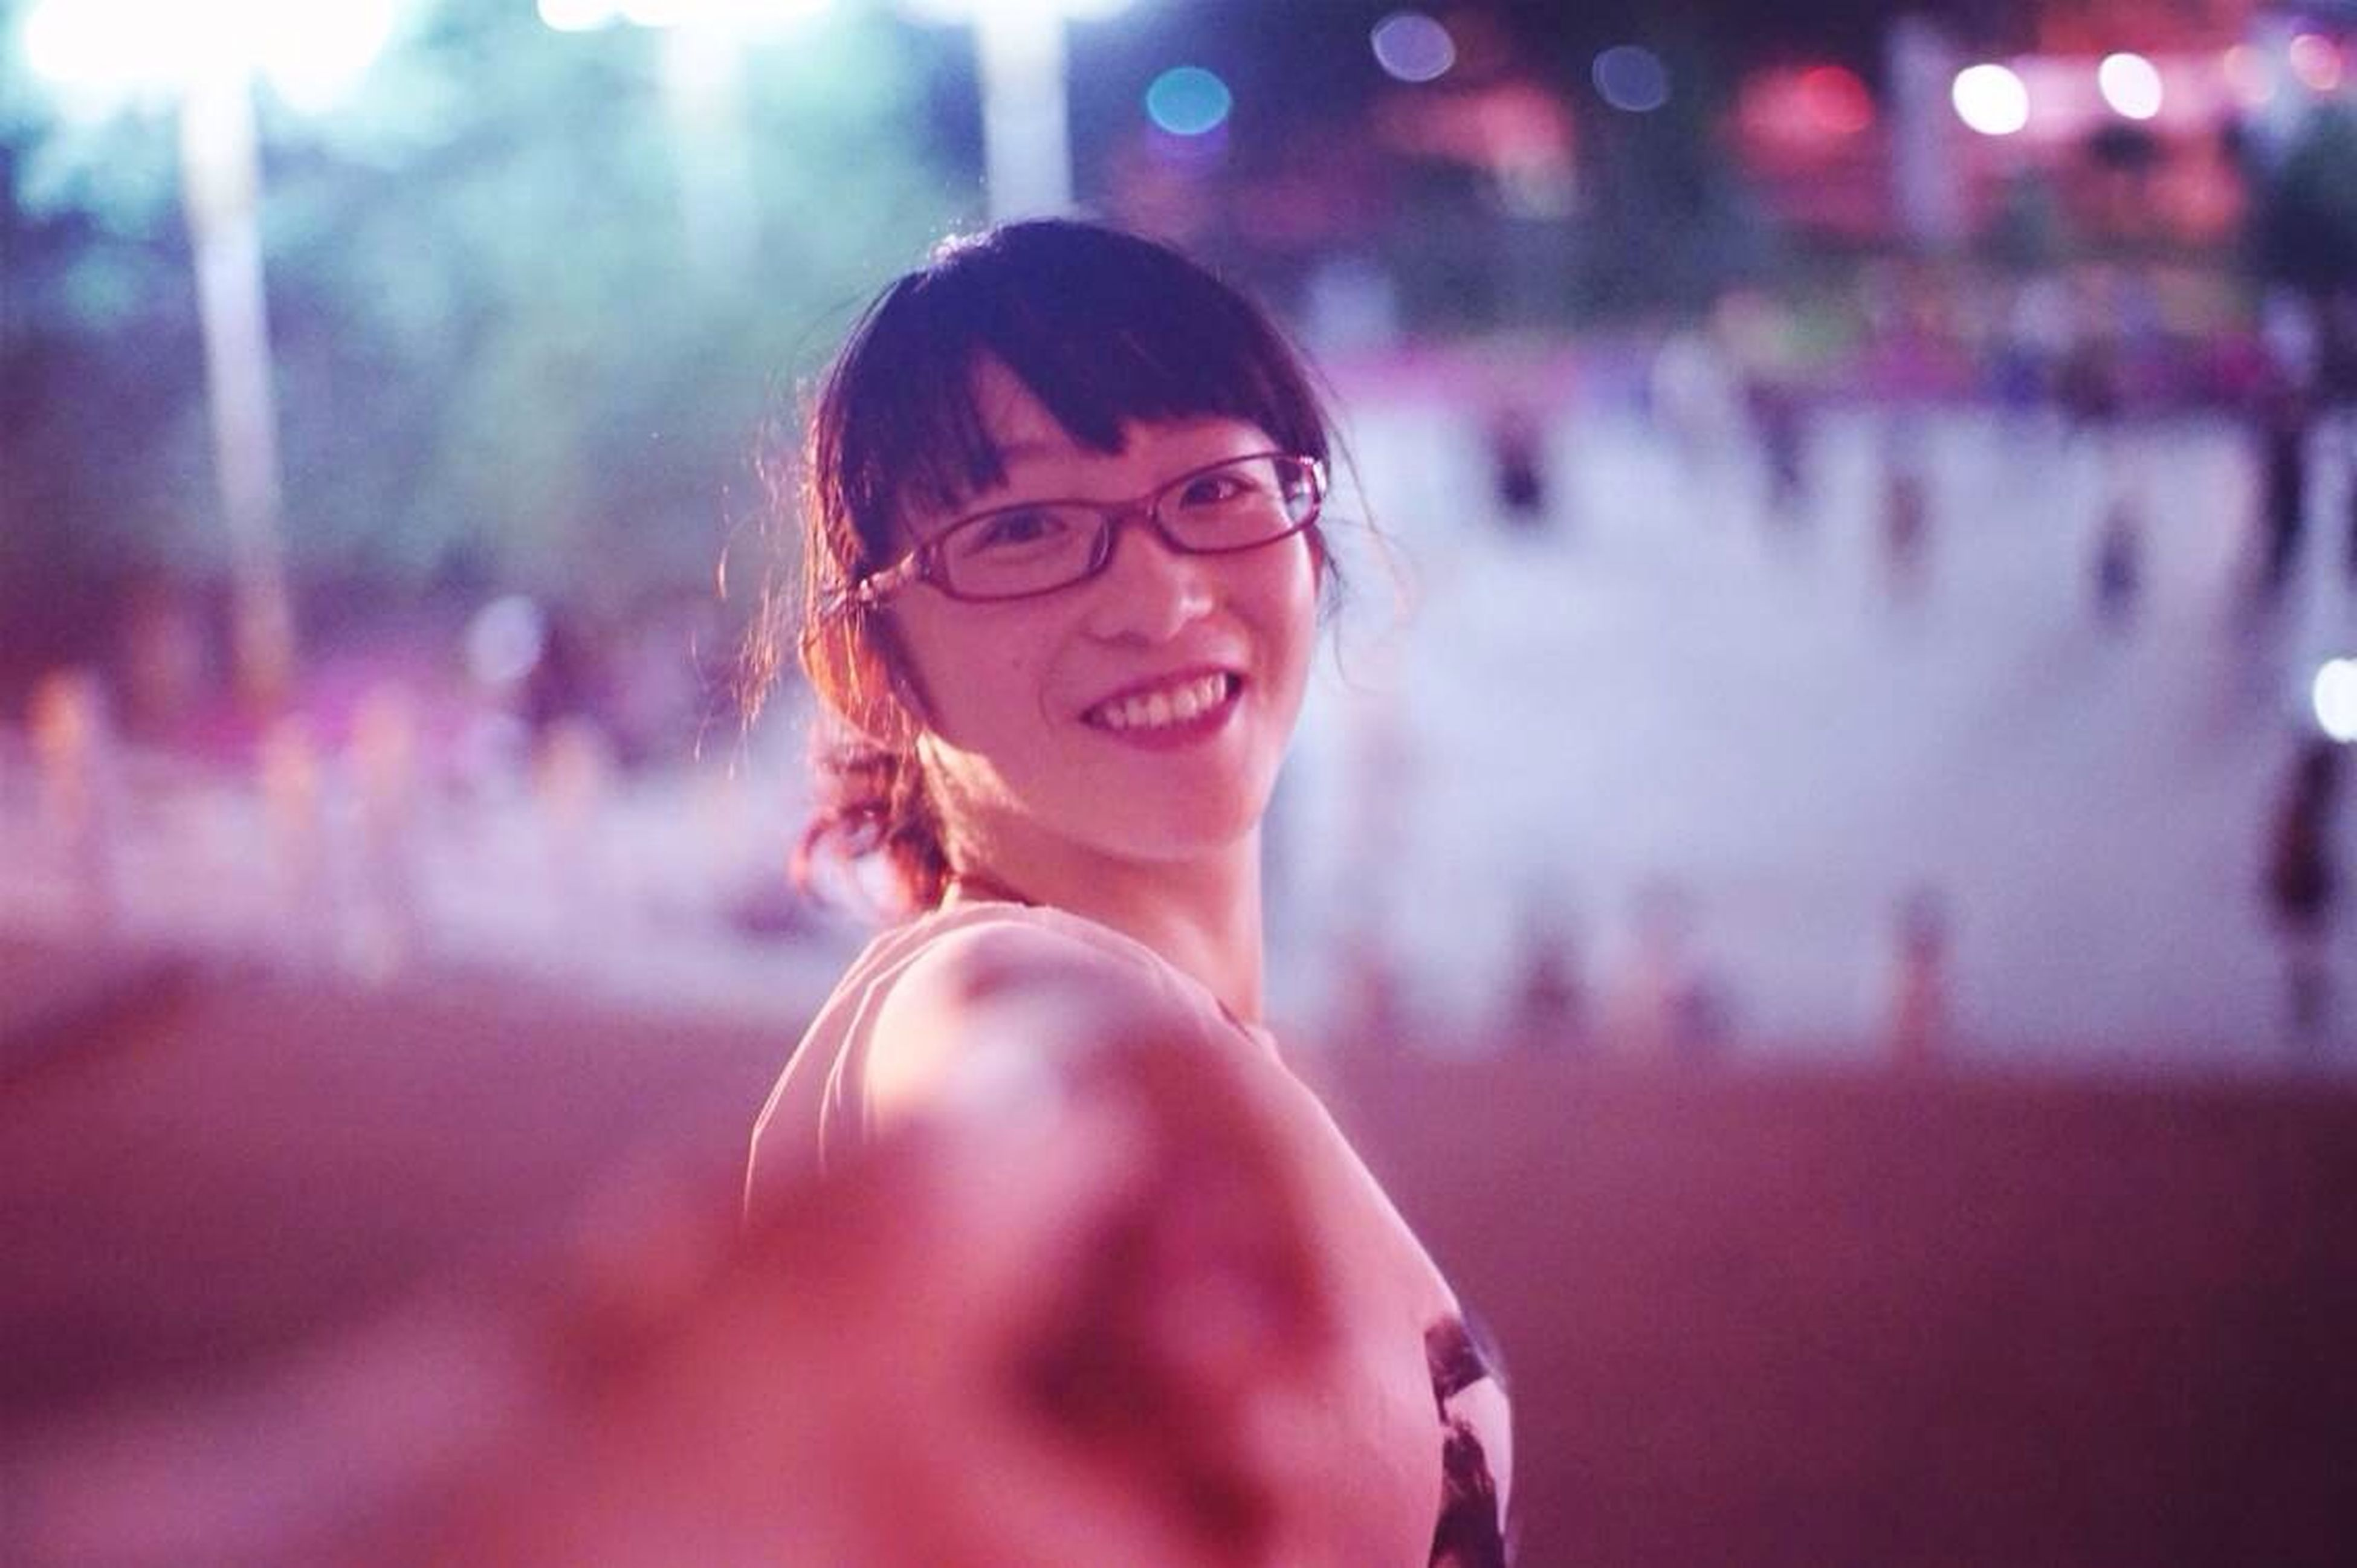 lifestyles, person, portrait, looking at camera, focus on foreground, leisure activity, front view, young adult, casual clothing, smiling, happiness, young women, standing, headshot, incidental people, waist up, elementary age